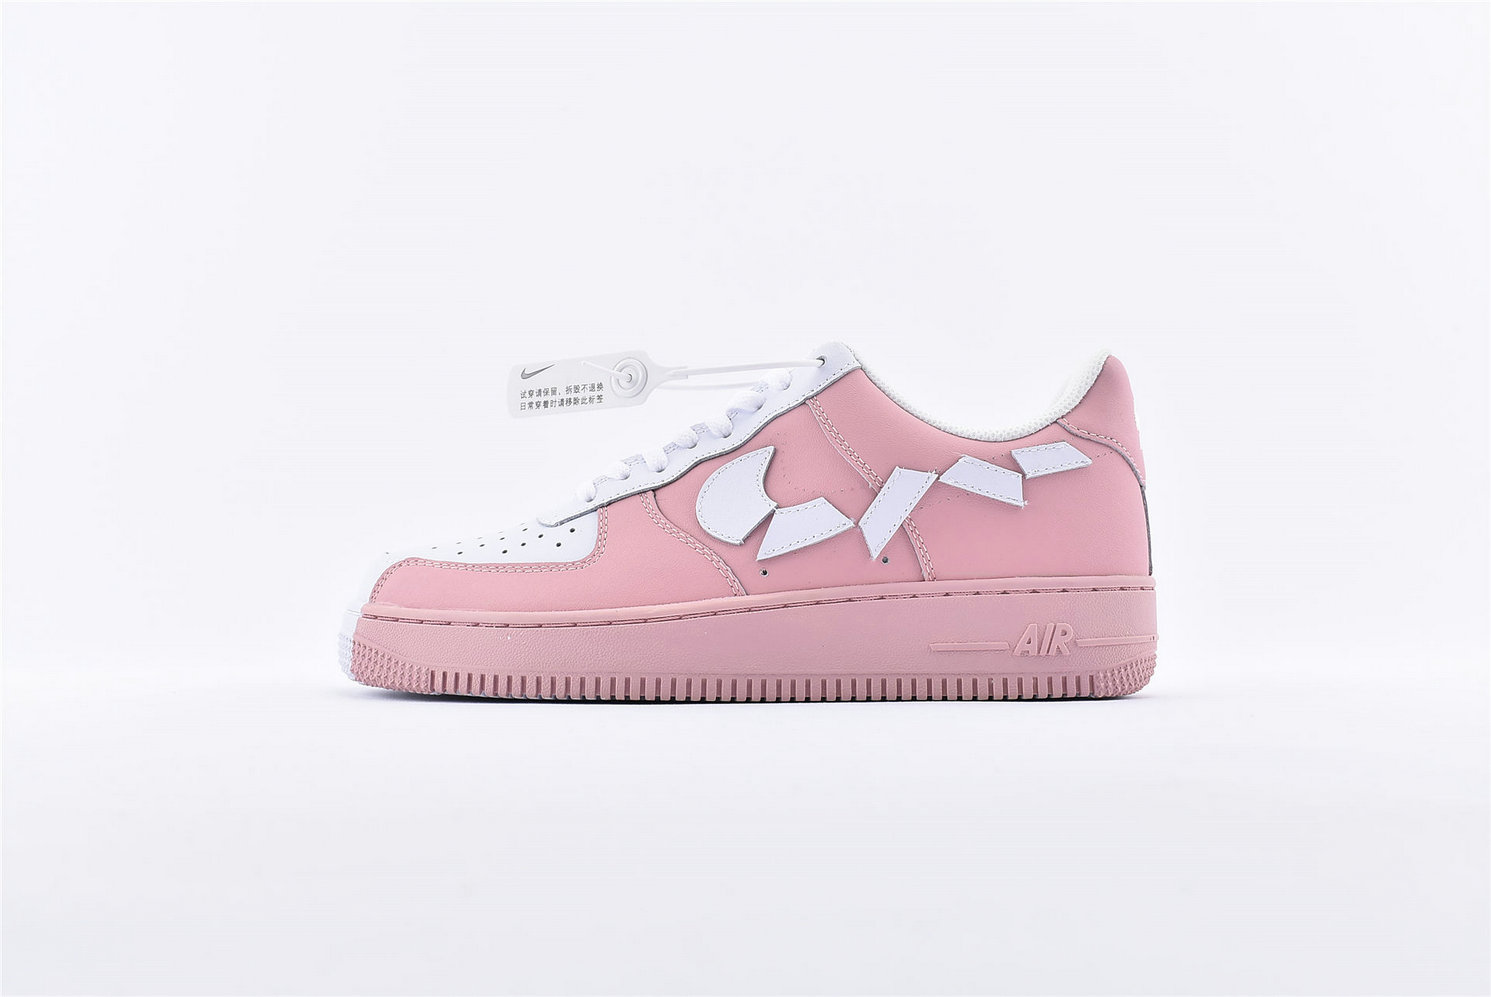 Where To Buy Wholesale Cheap Womens Nike Air Force 1 07 Pink White 315124-600 - www.wholesaleflyknit.com